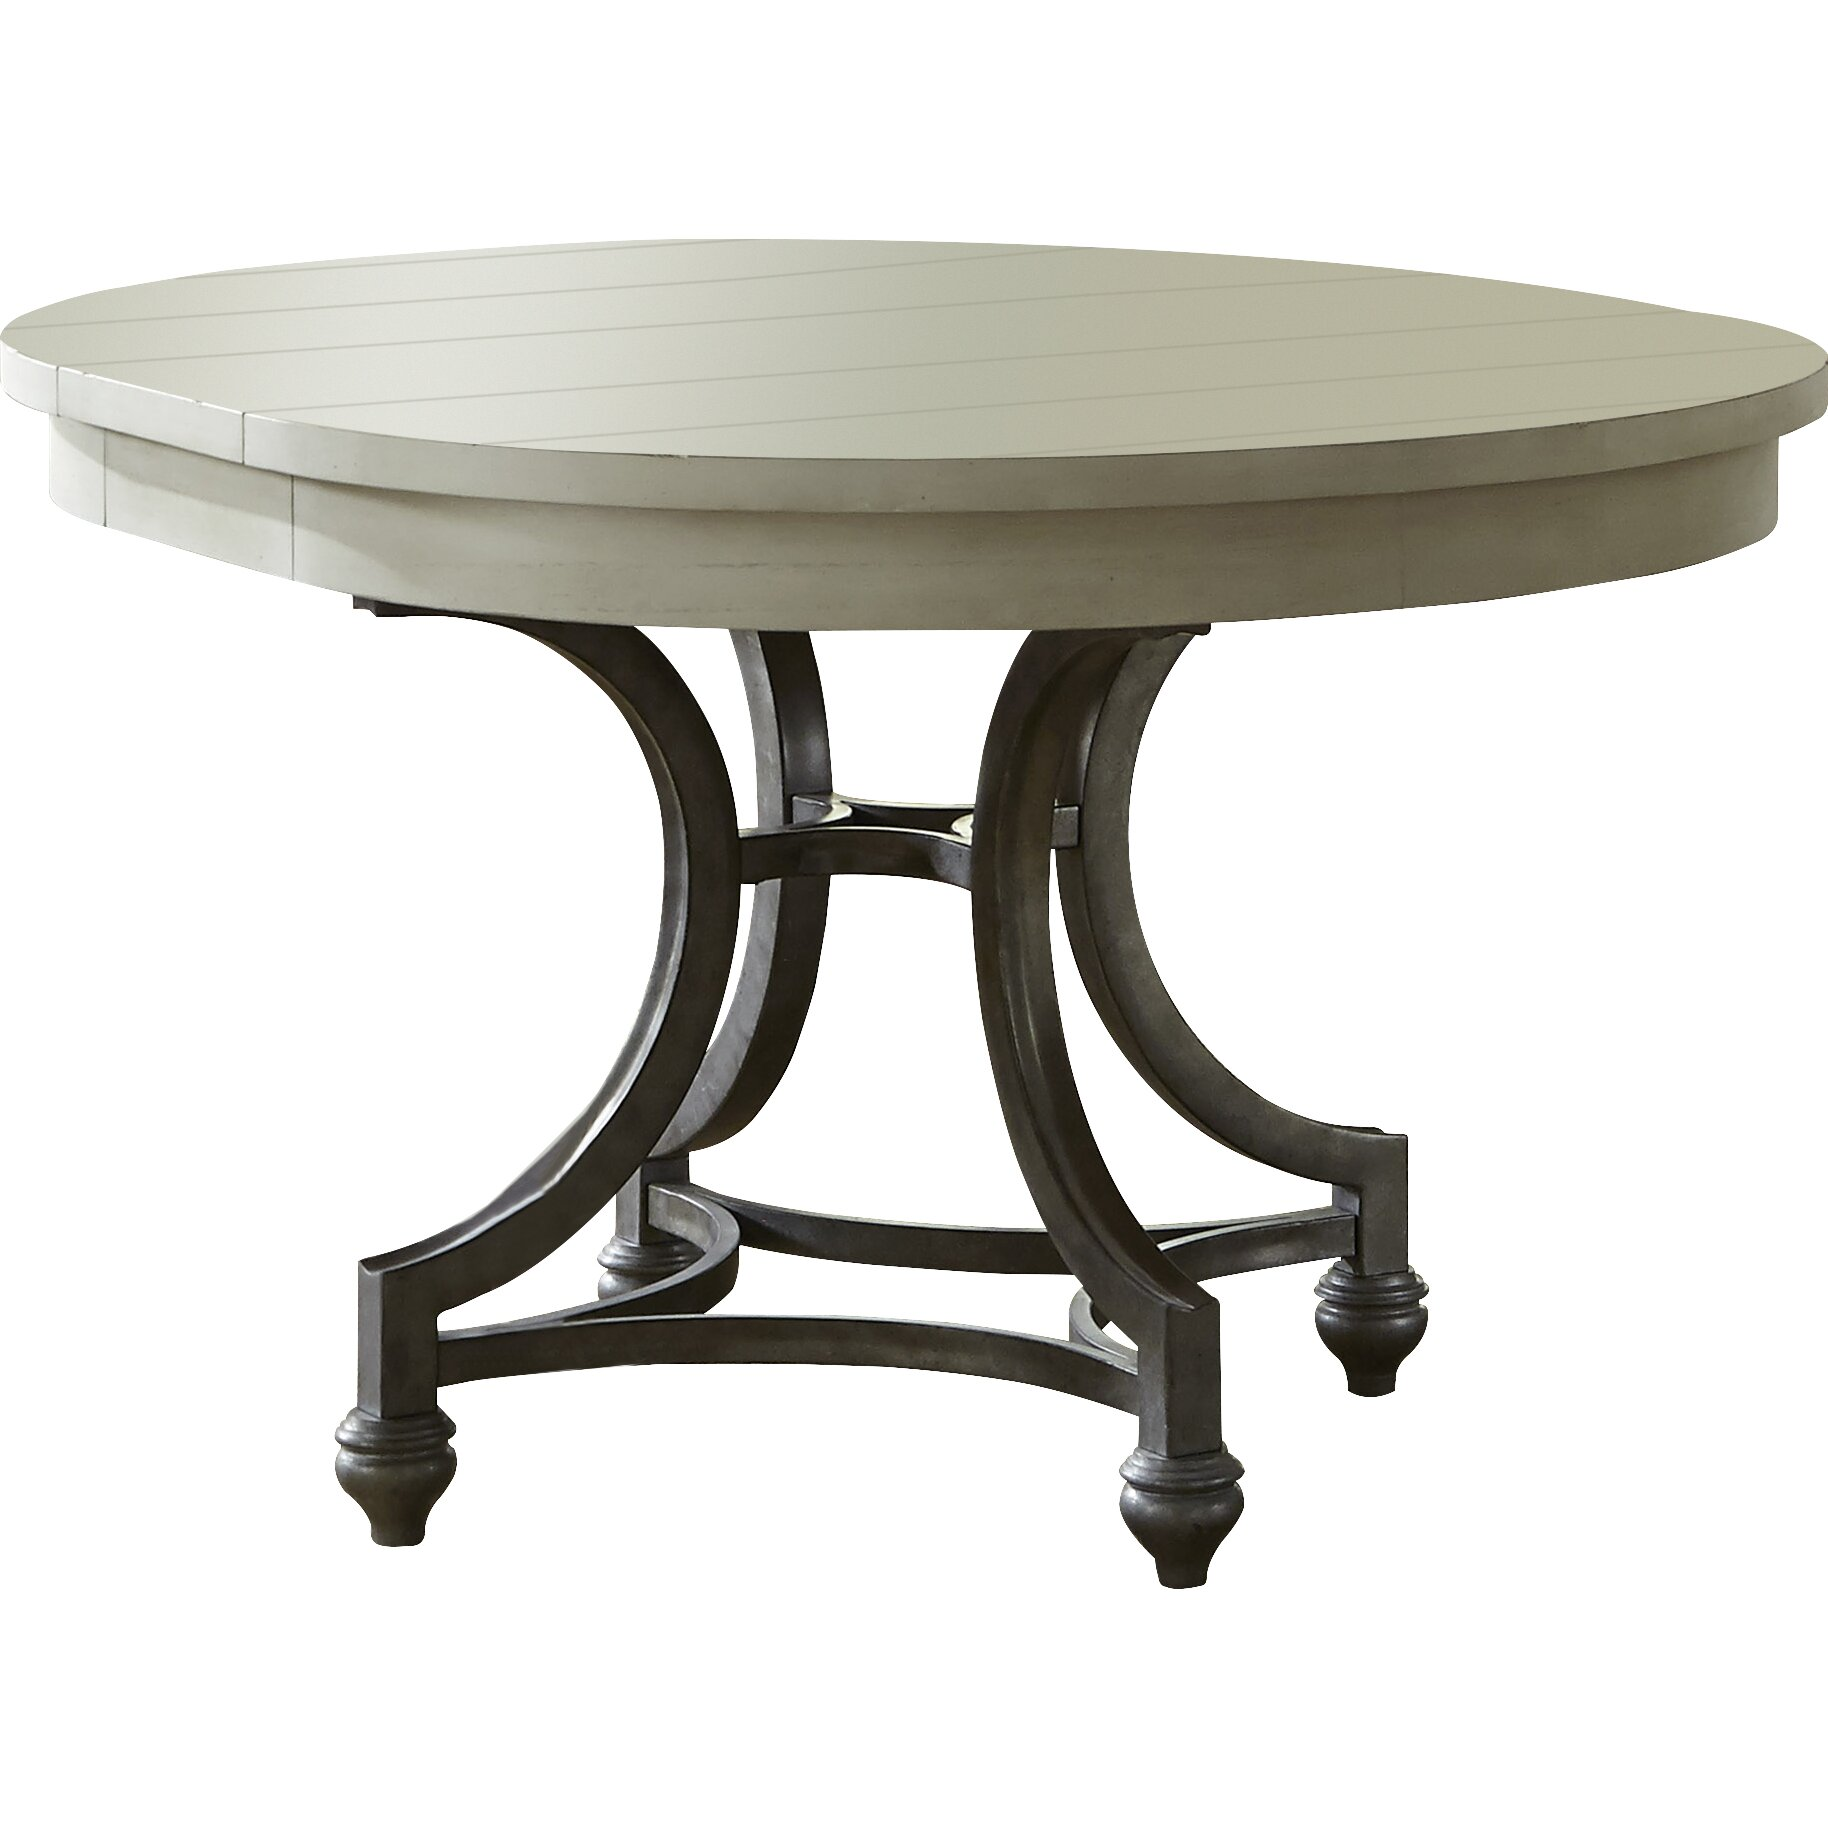 Beachcrest home stamford round dining table reviews for Round kitchen table for 4